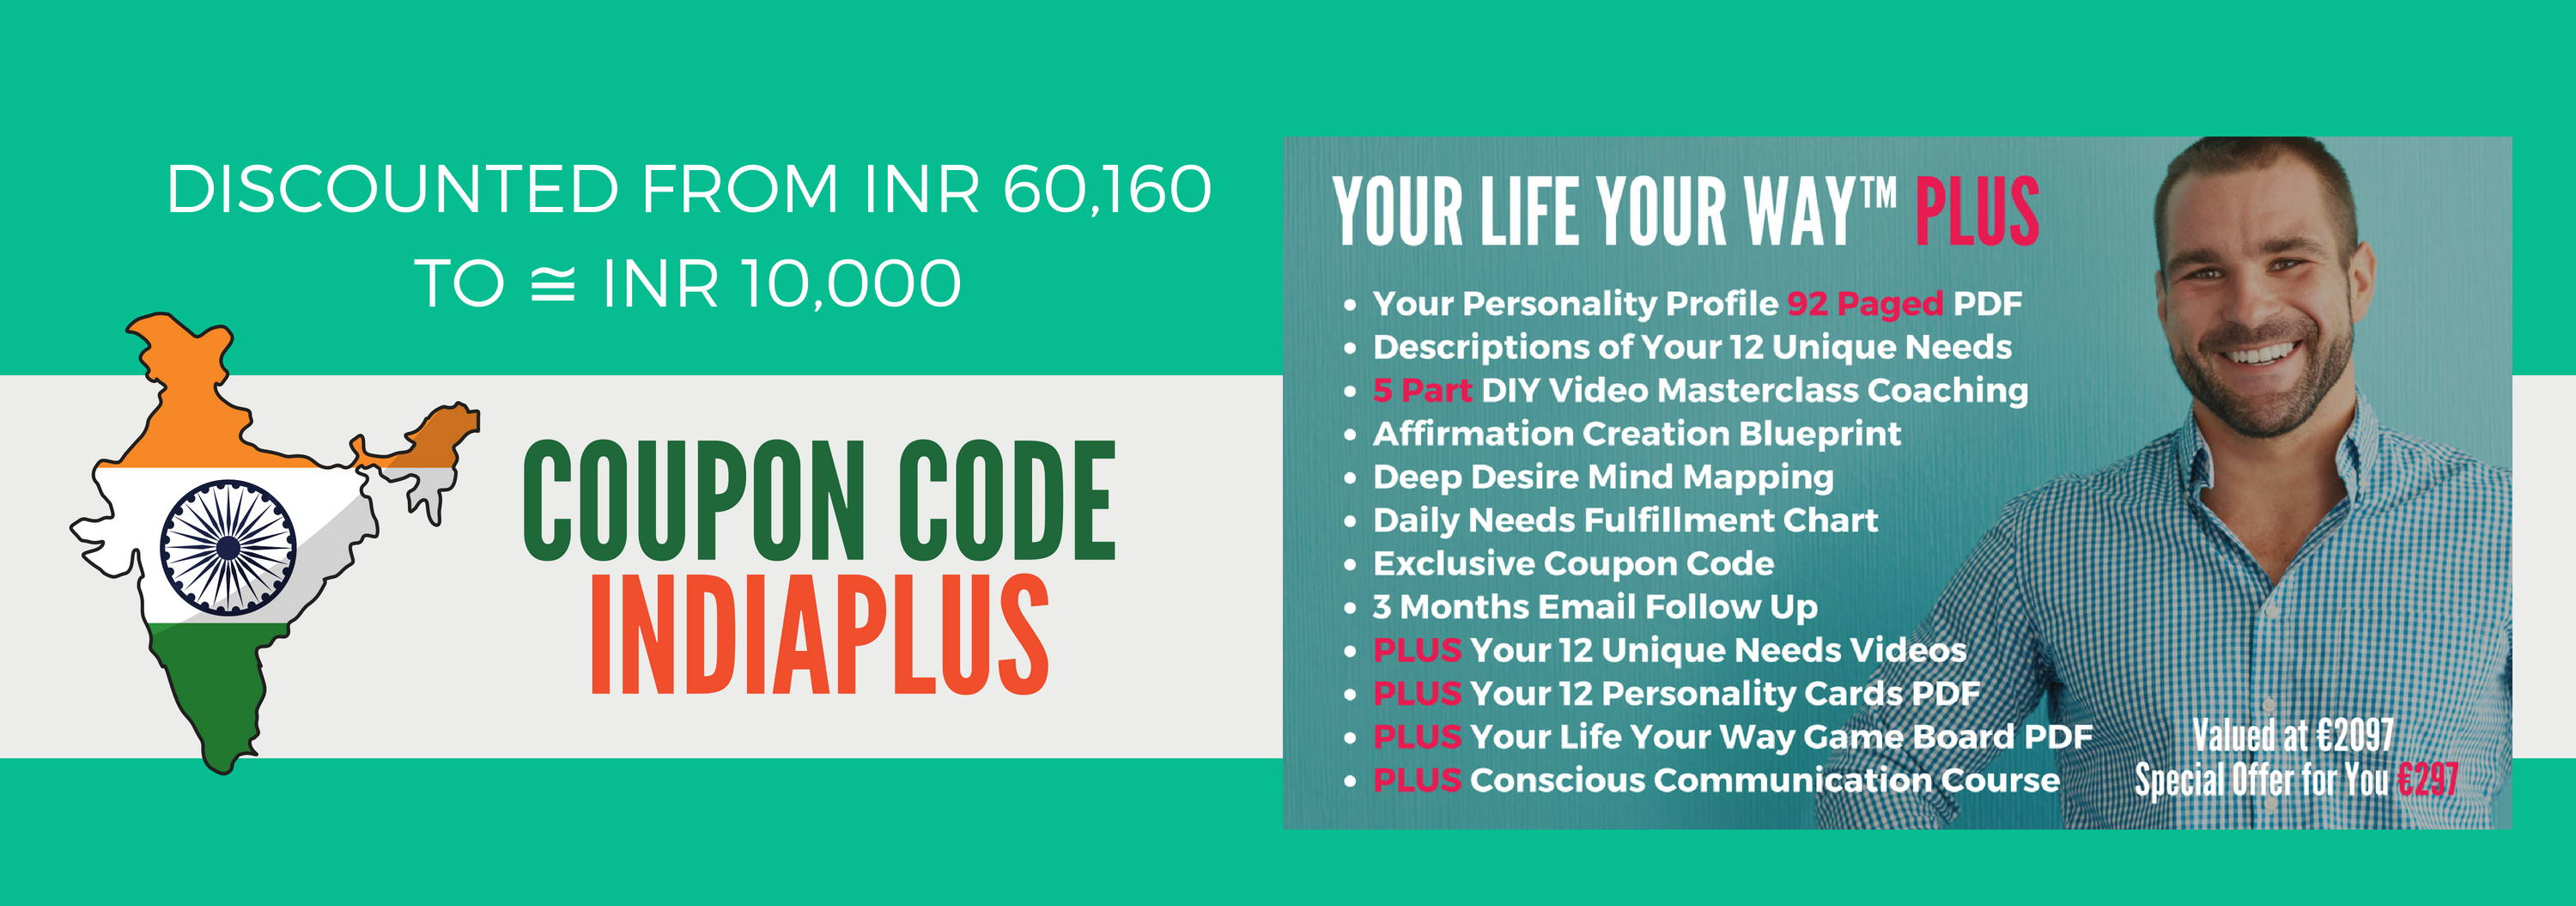 Special offers to become the best version of yourself with use coupon code indiaplus for india residents developing countries now yours for about inr 10000 fandeluxe Image collections